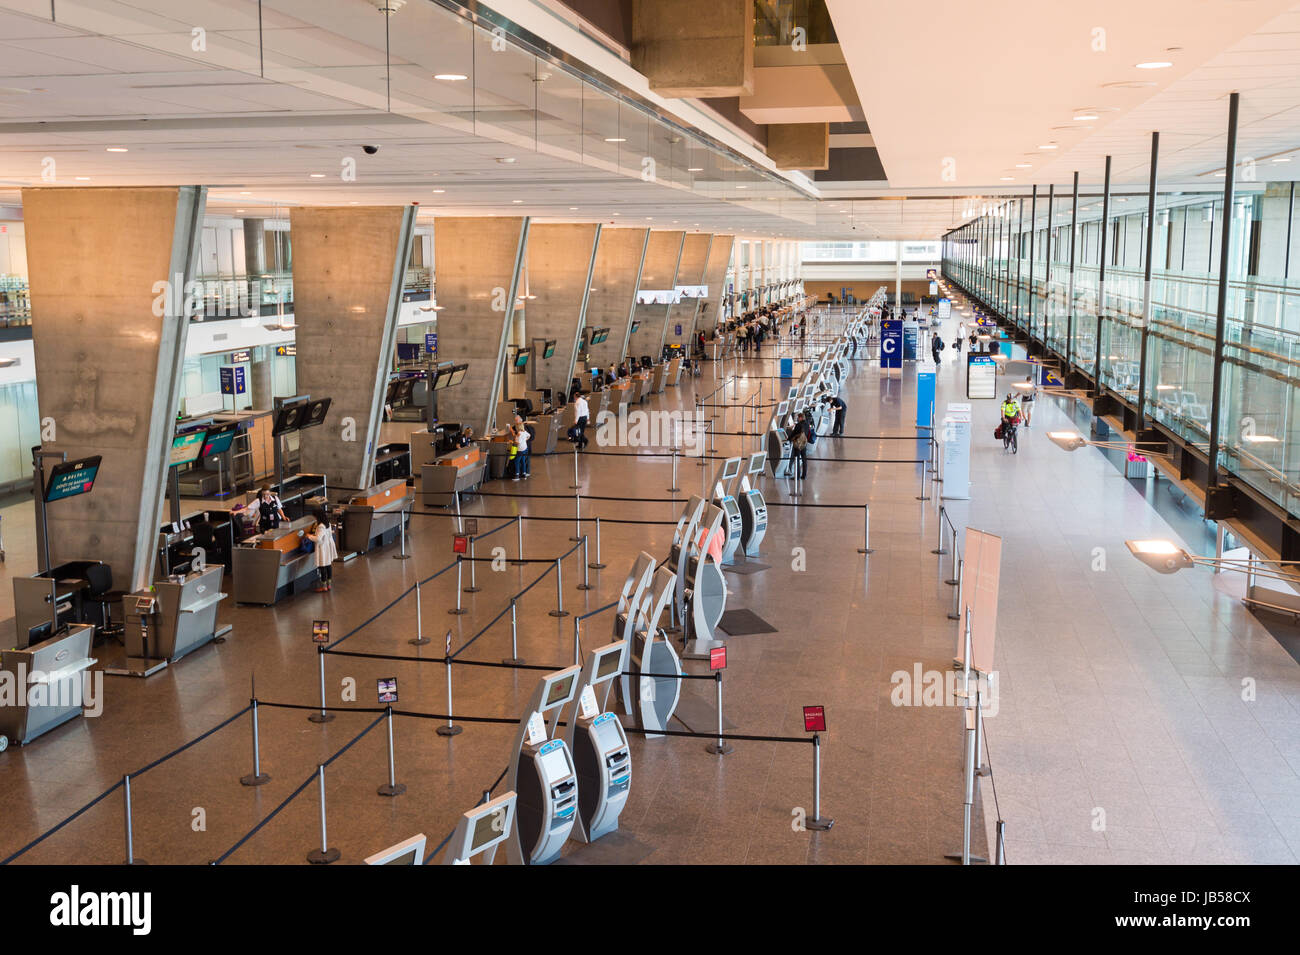 Montreal, CANADA - 8 June 2017: Check-in counters at Pierre Elliott Trudeau International airport. - Stock Image